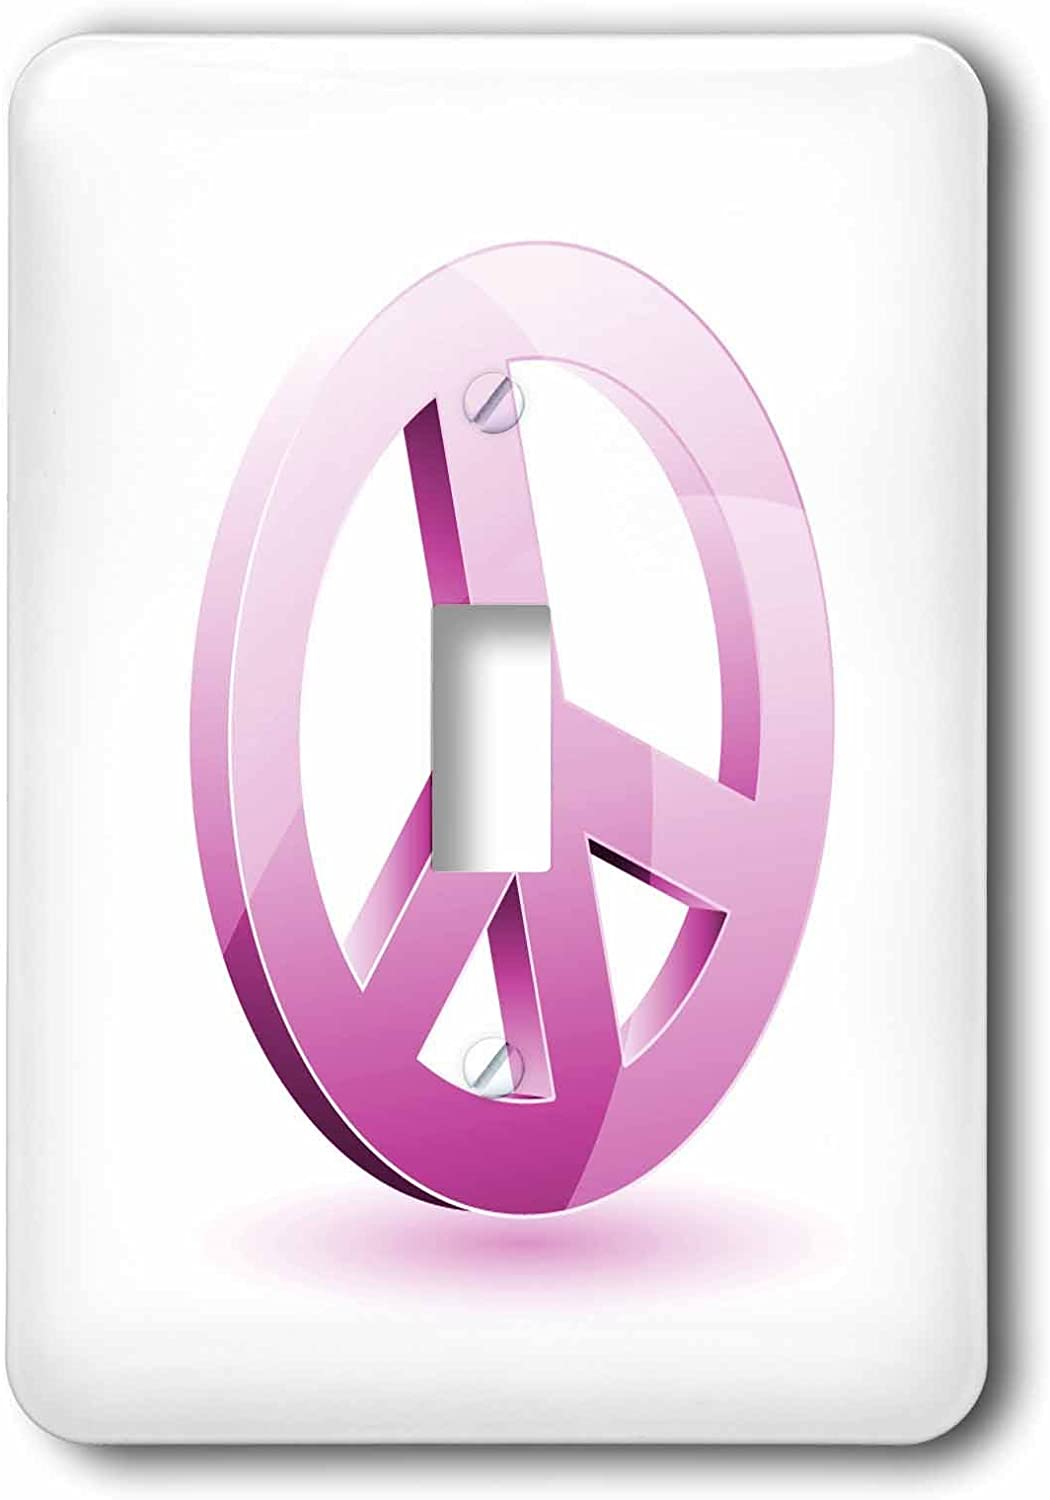 3drose Llc Lsp 101287 1 Pink Peace Sign Single Toggle Switch Switch Plates Amazon Com